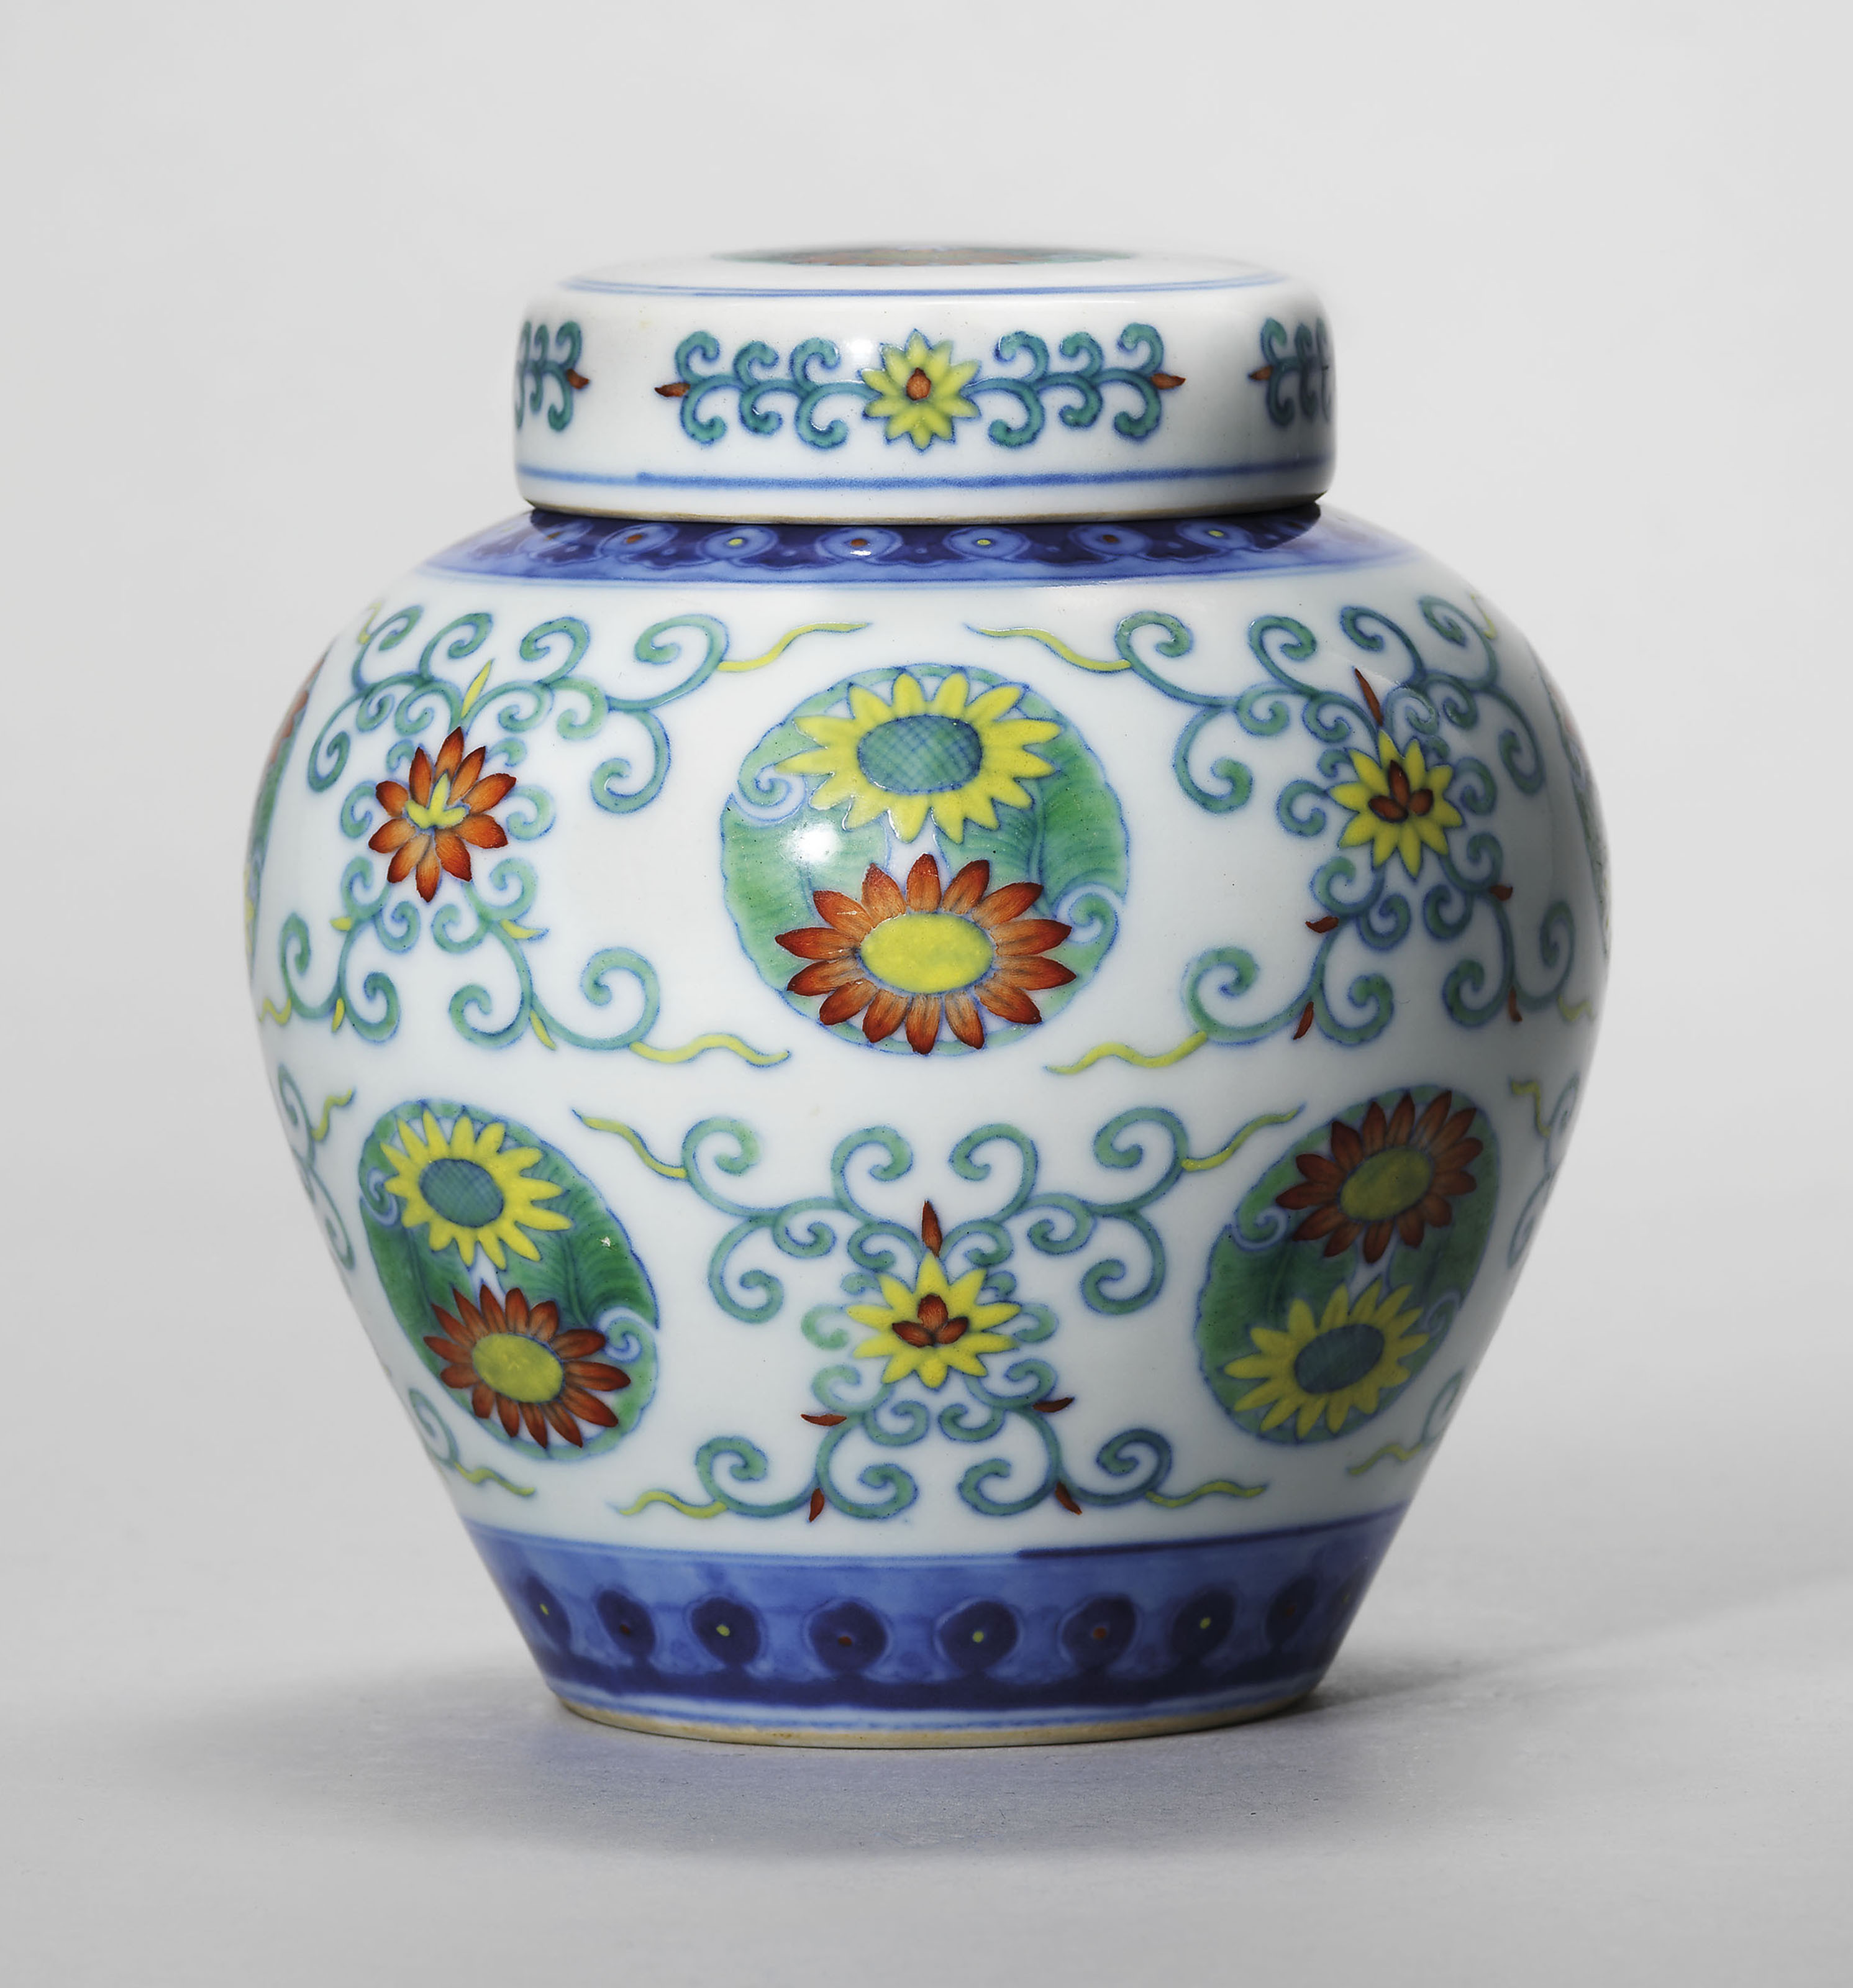 extra large oriental vases of a guide to the symbolism of flowers on chinese ceramics christies inside a doucai chrysanthemum jar and cover qianlong six character seal mark in underglaze blue